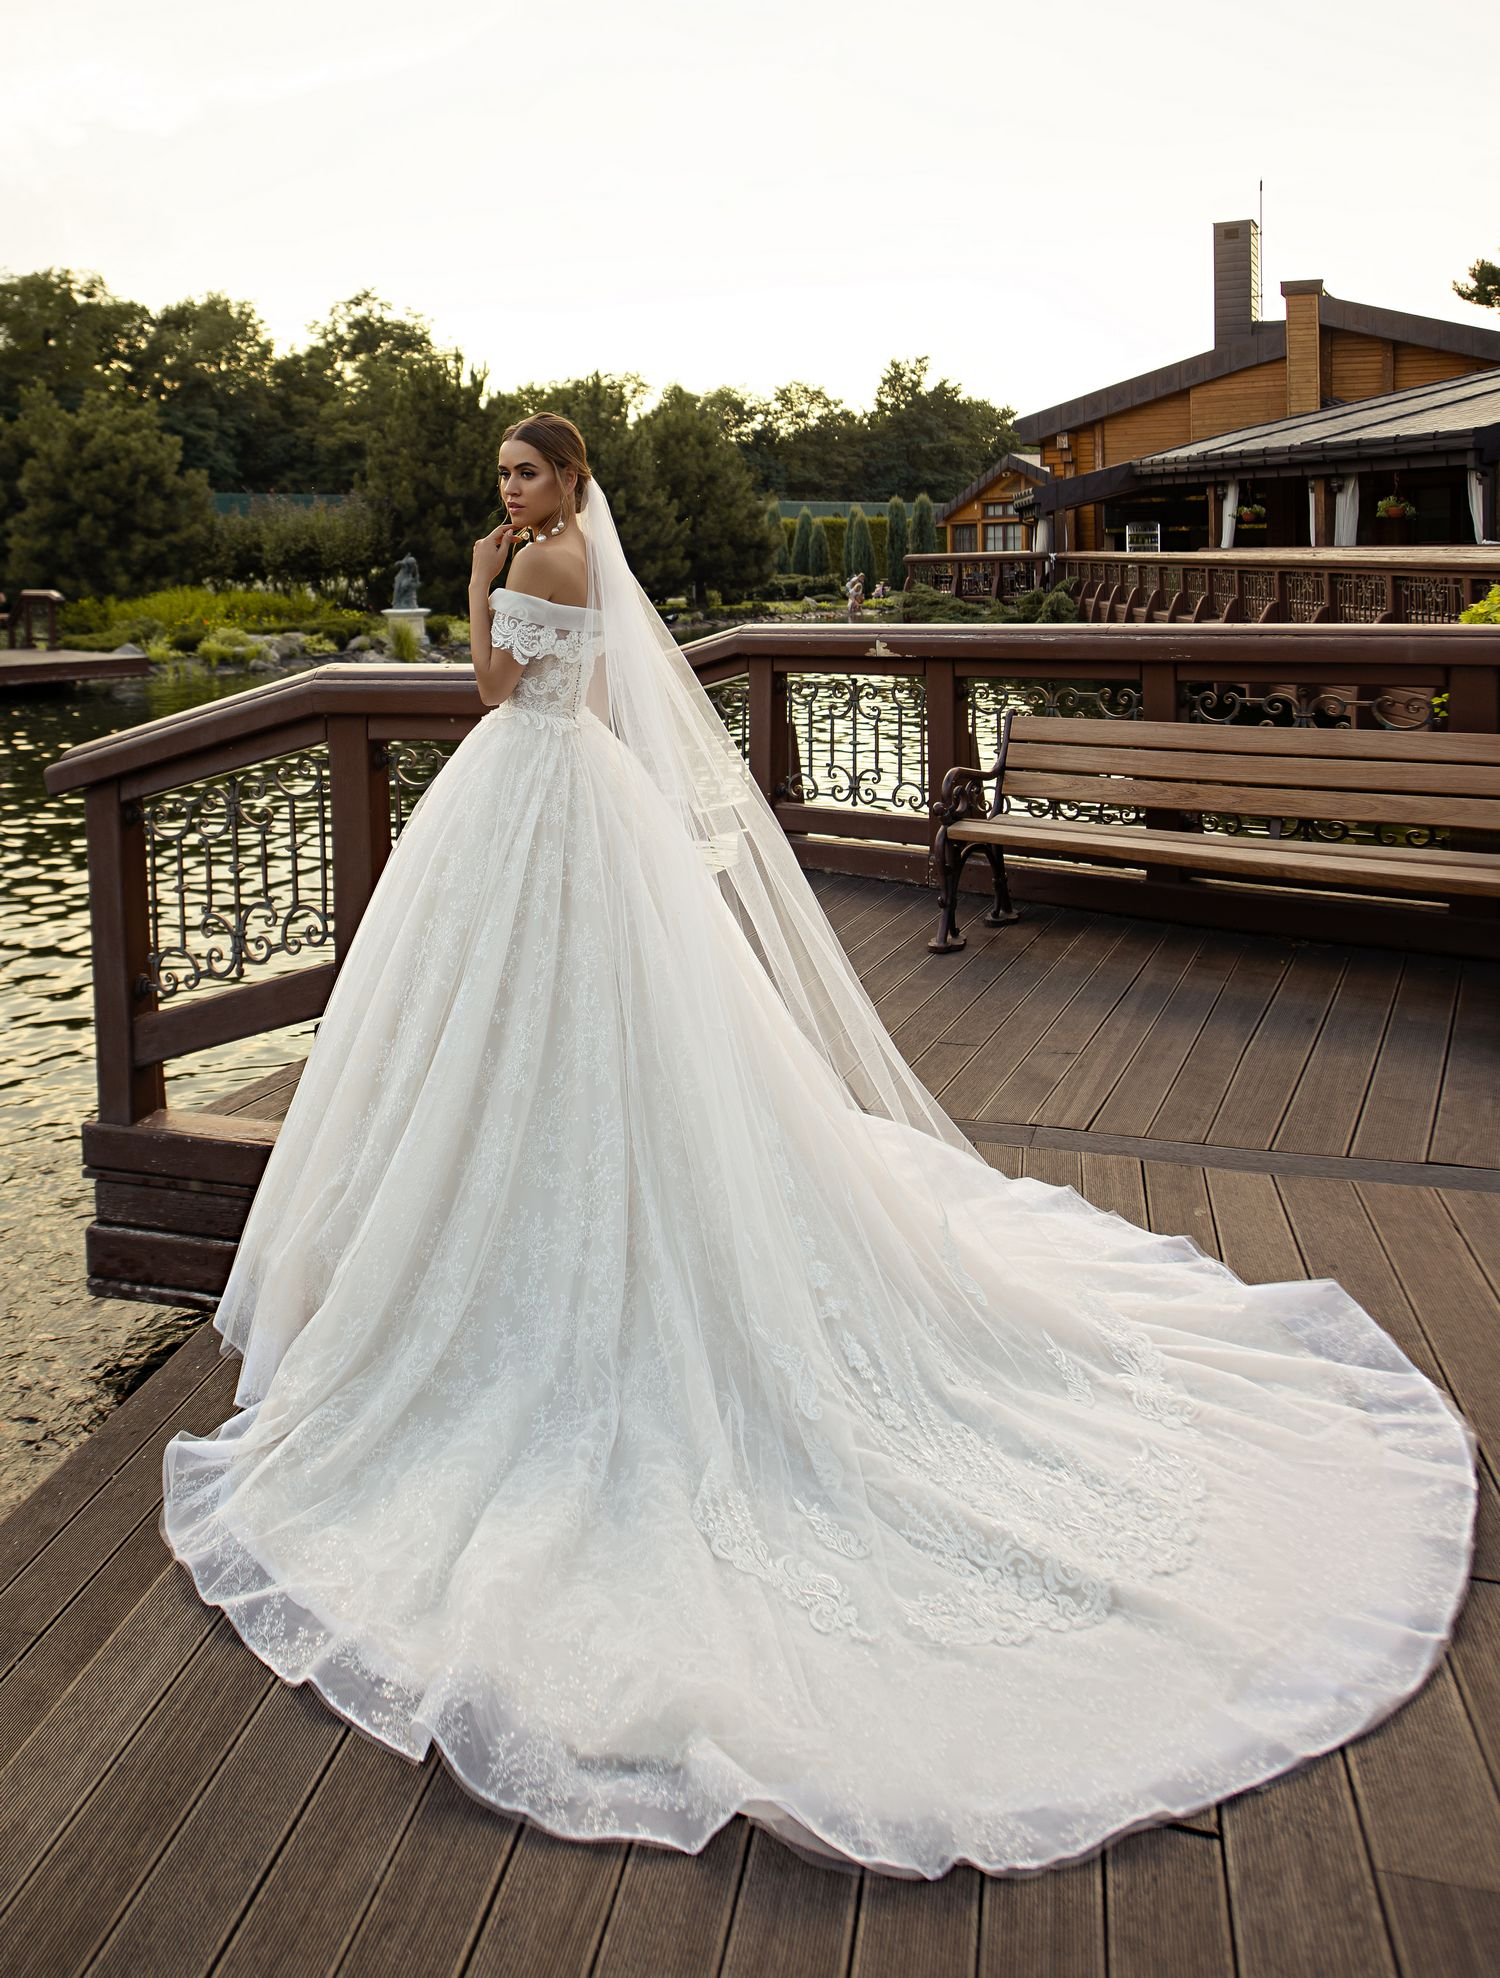 Wedding veil with delicate decoration wholesale from the company Silviamo-1